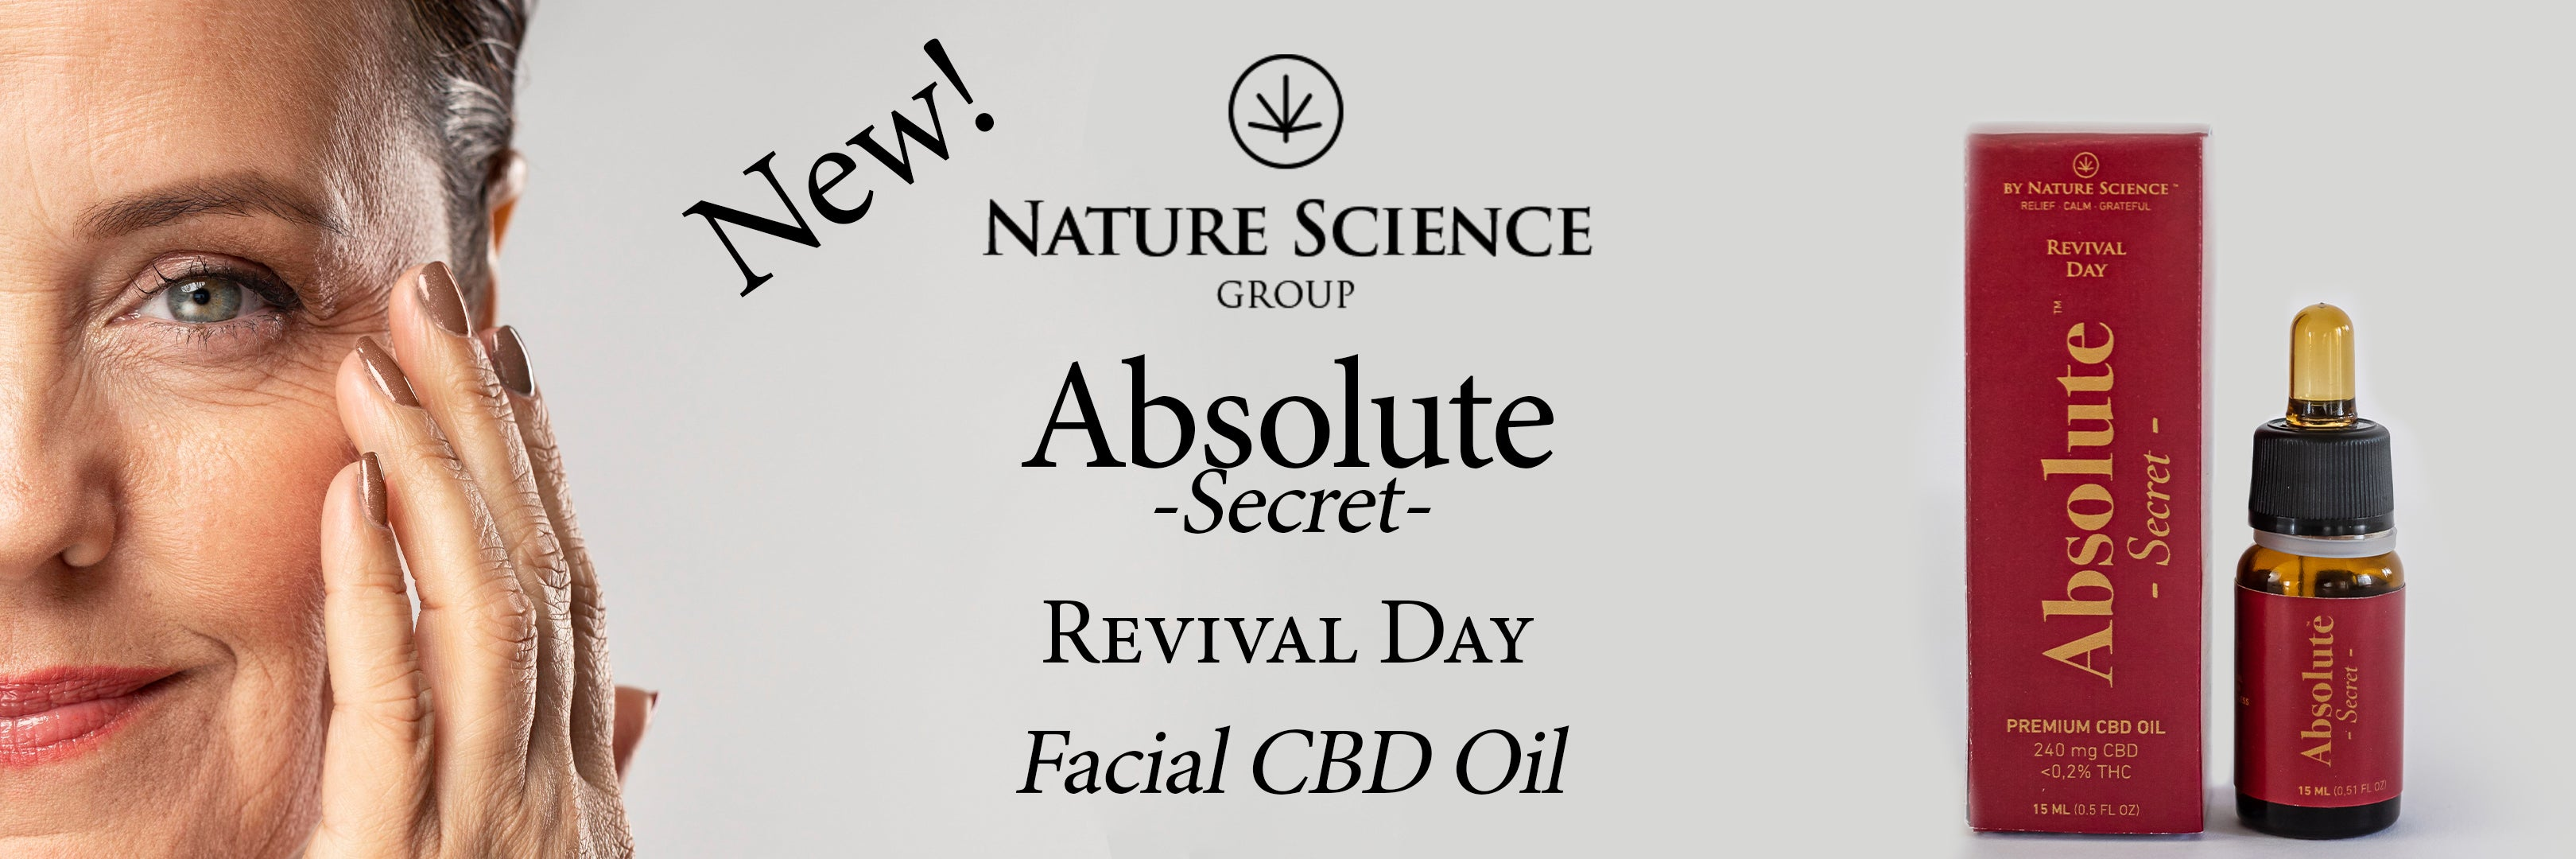 Nature Science Group - Nature Science Absolute Secret CBD REVIVAL DAY facial oil